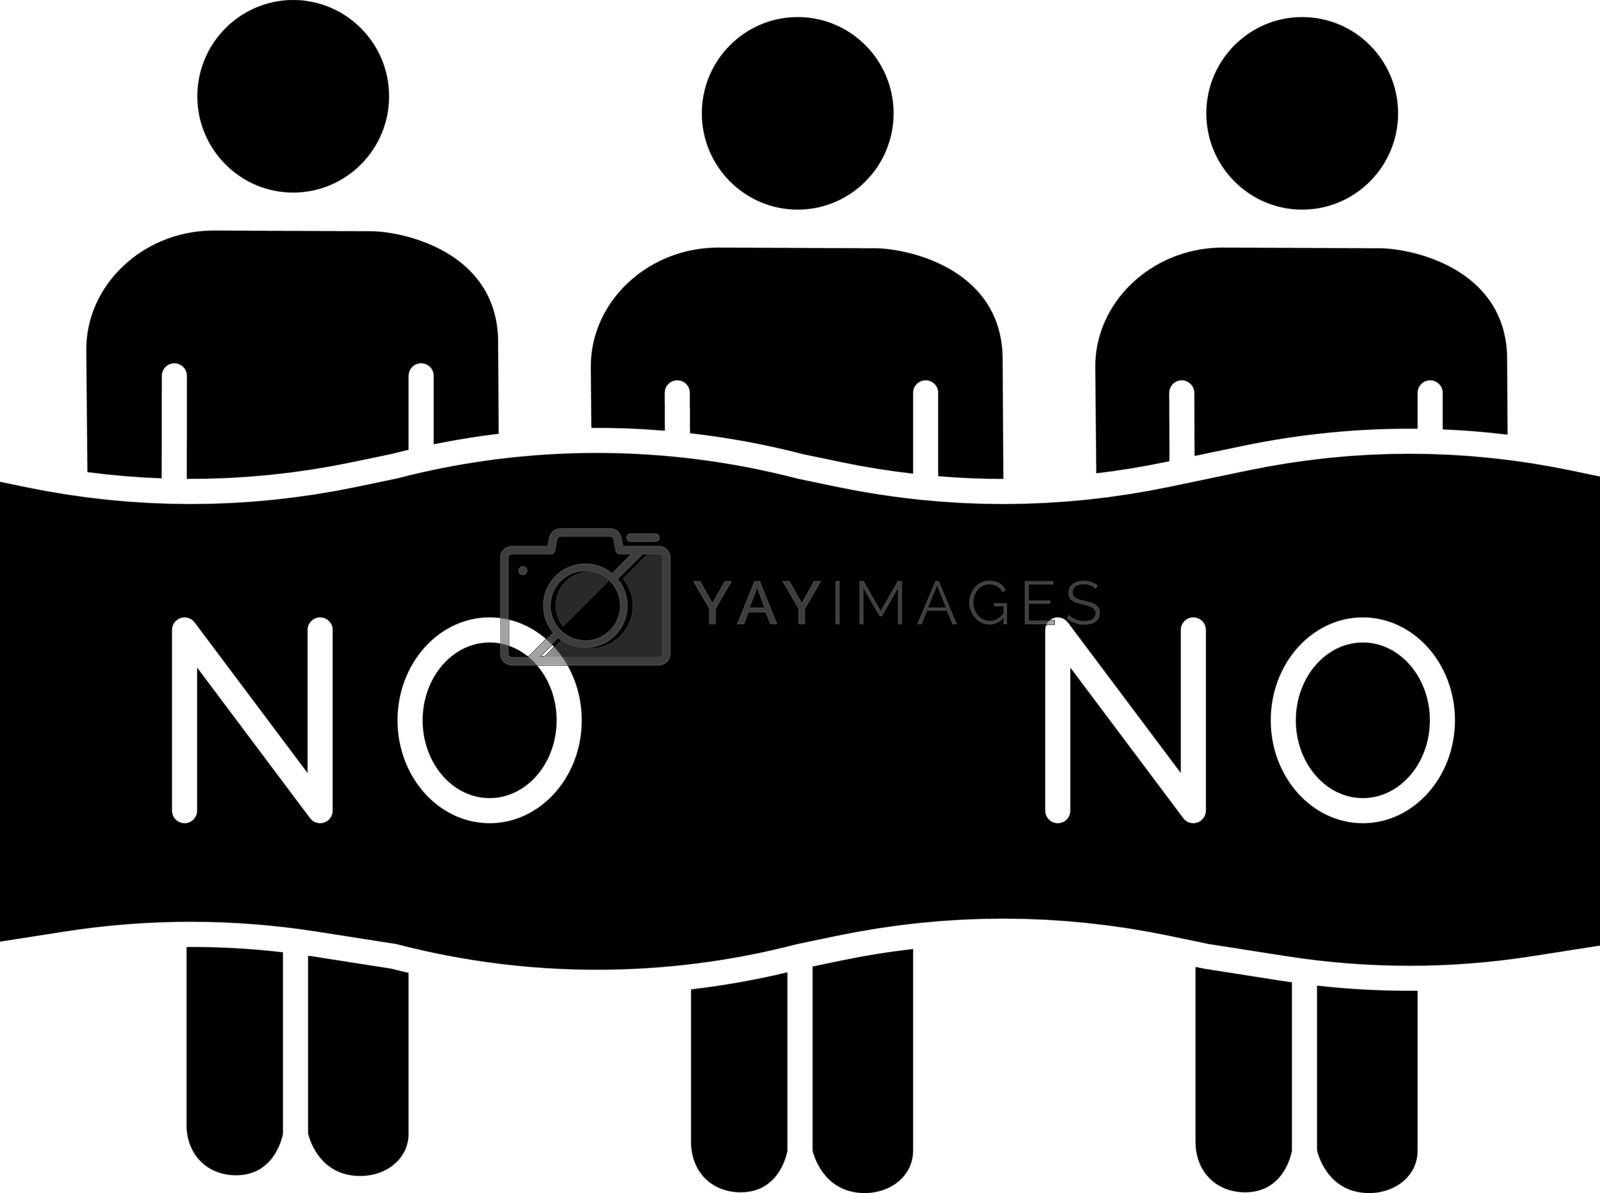 Protest event glyph icon. Political protest. Activists. Social movement. Public opinion. Demonstration, meeting. Collective action. Silhouette symbol. Vector isolated illustration